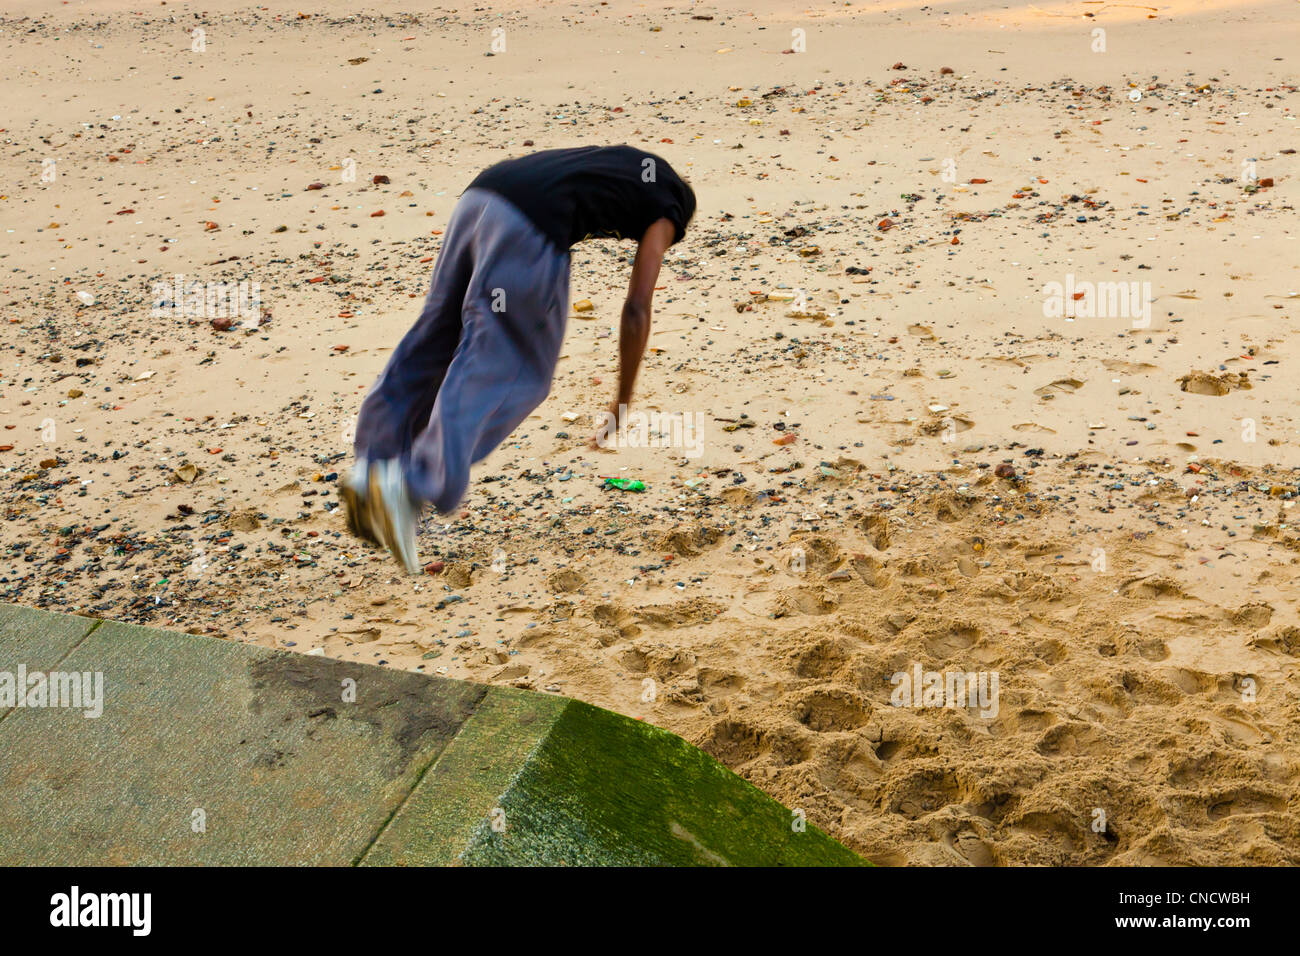 Child somersaulting on to sand from a height, London, England, UK Stock Photo